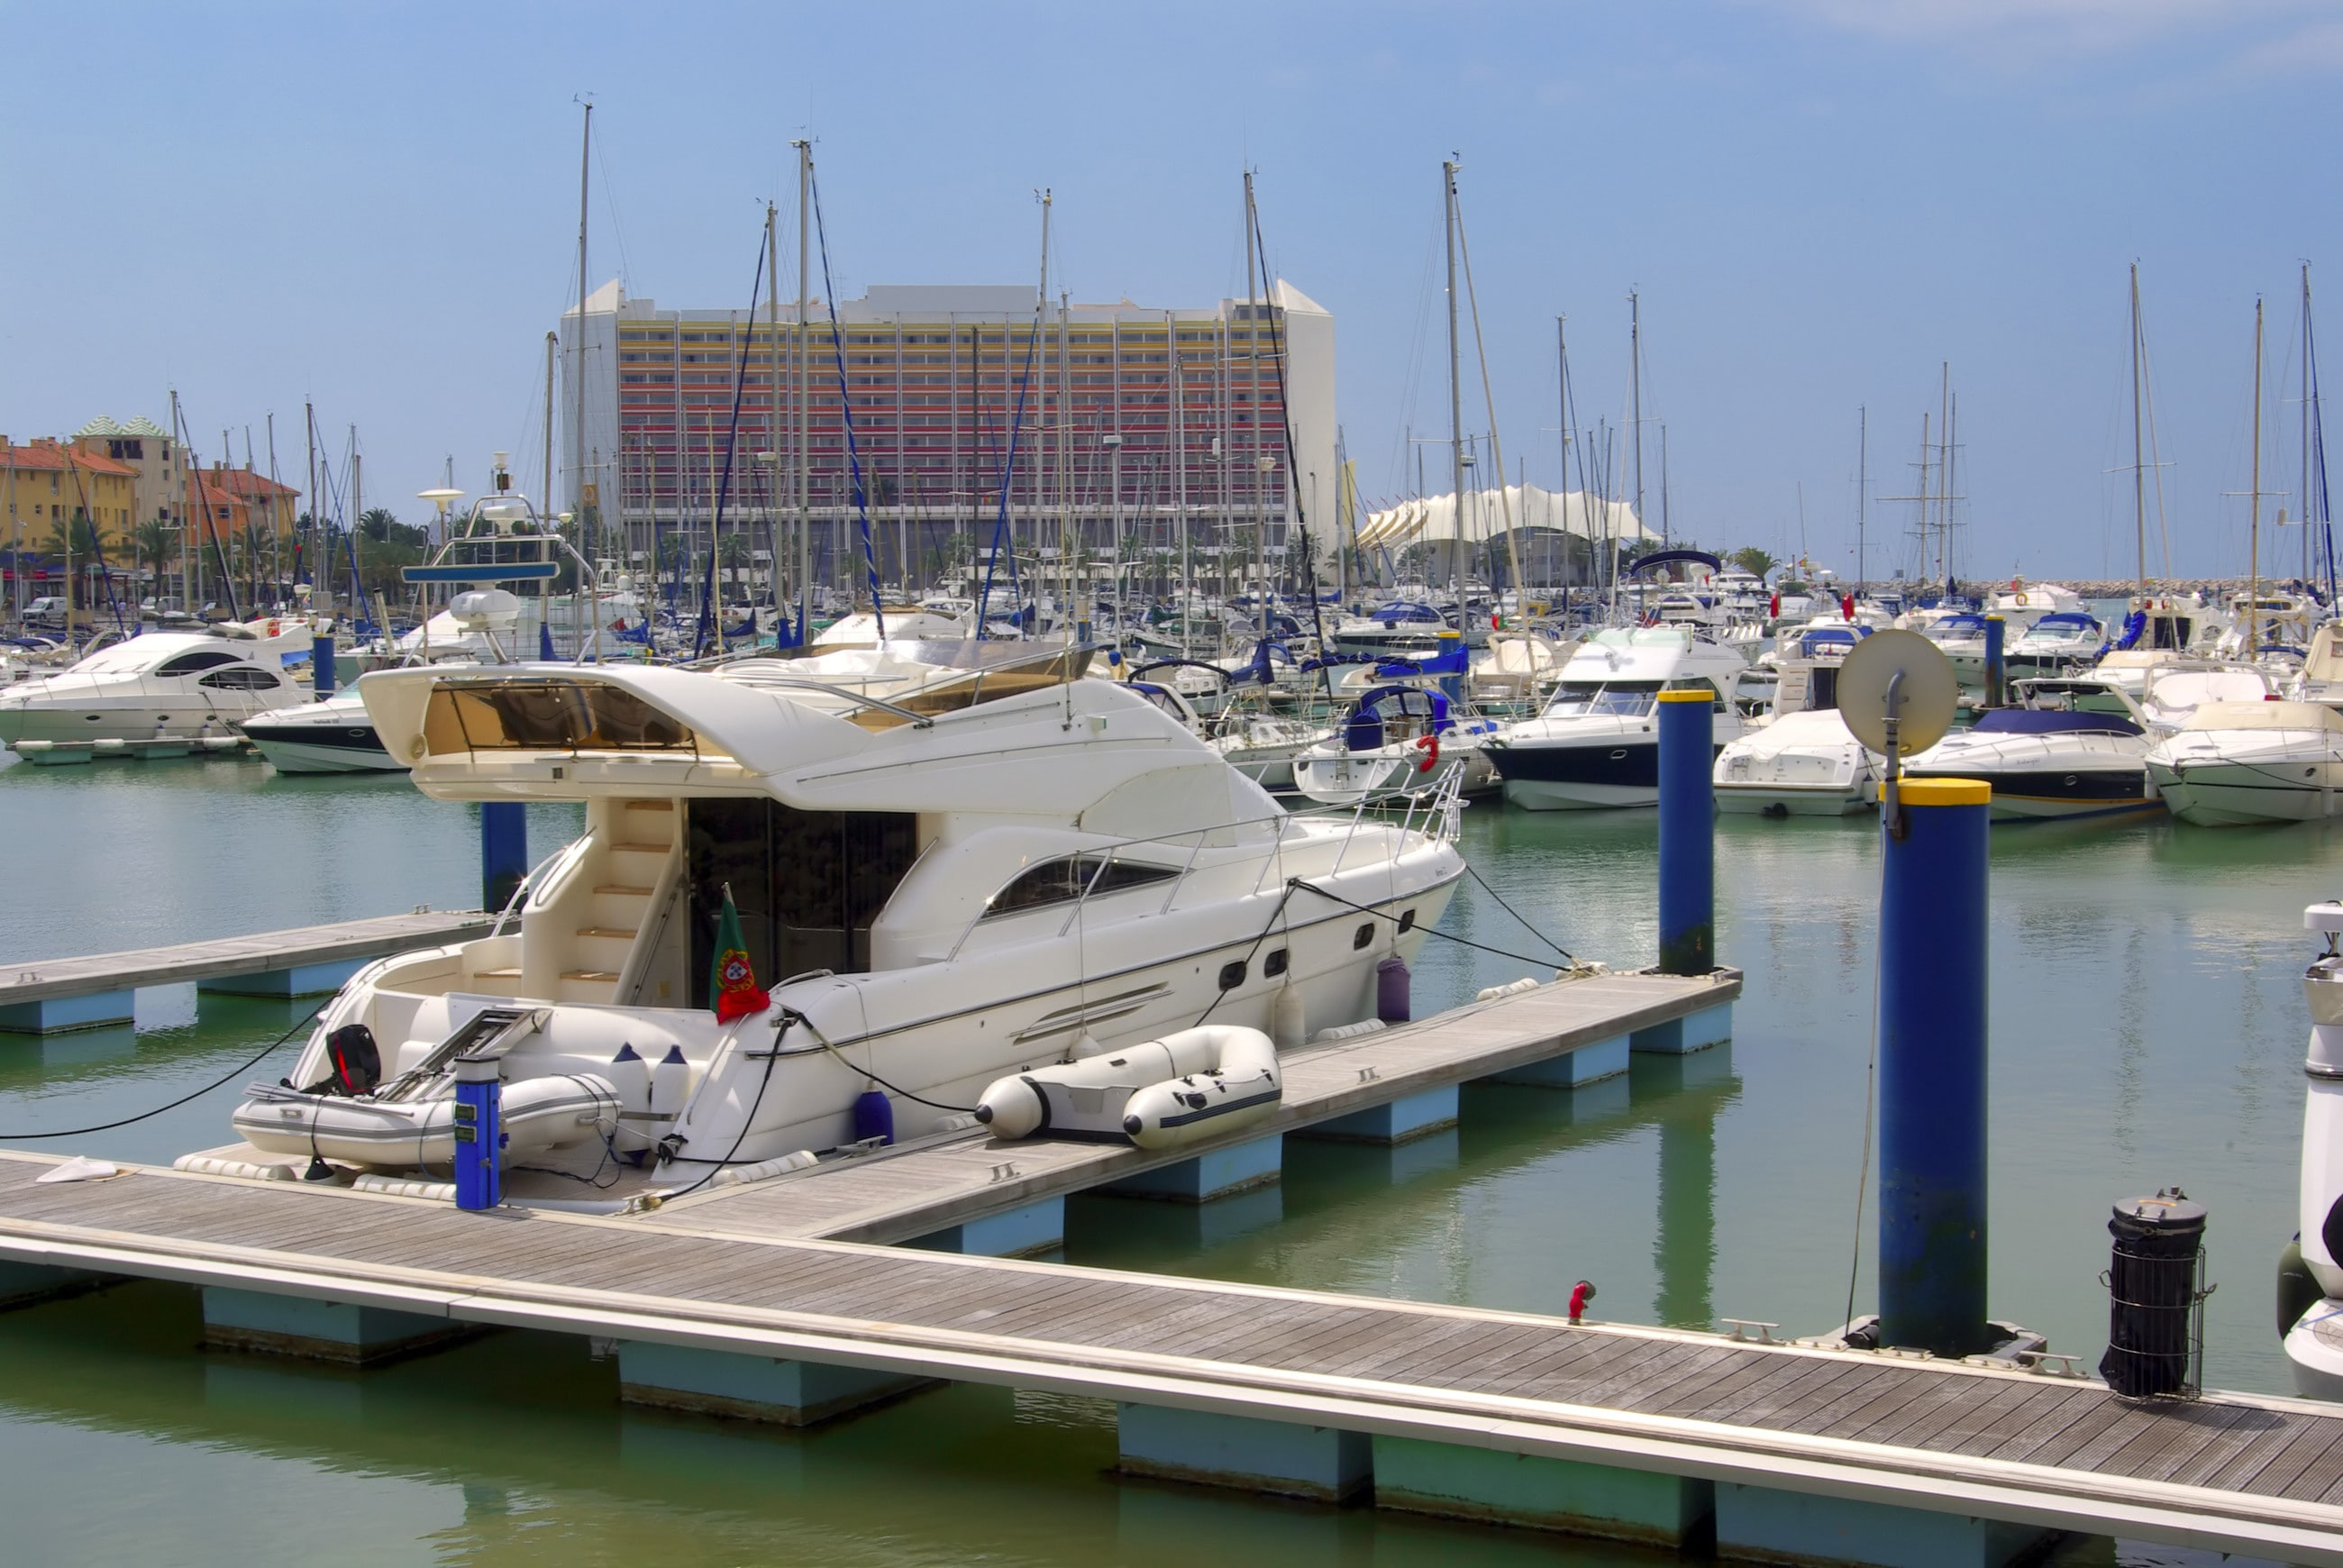 Power boat at the dock on water.